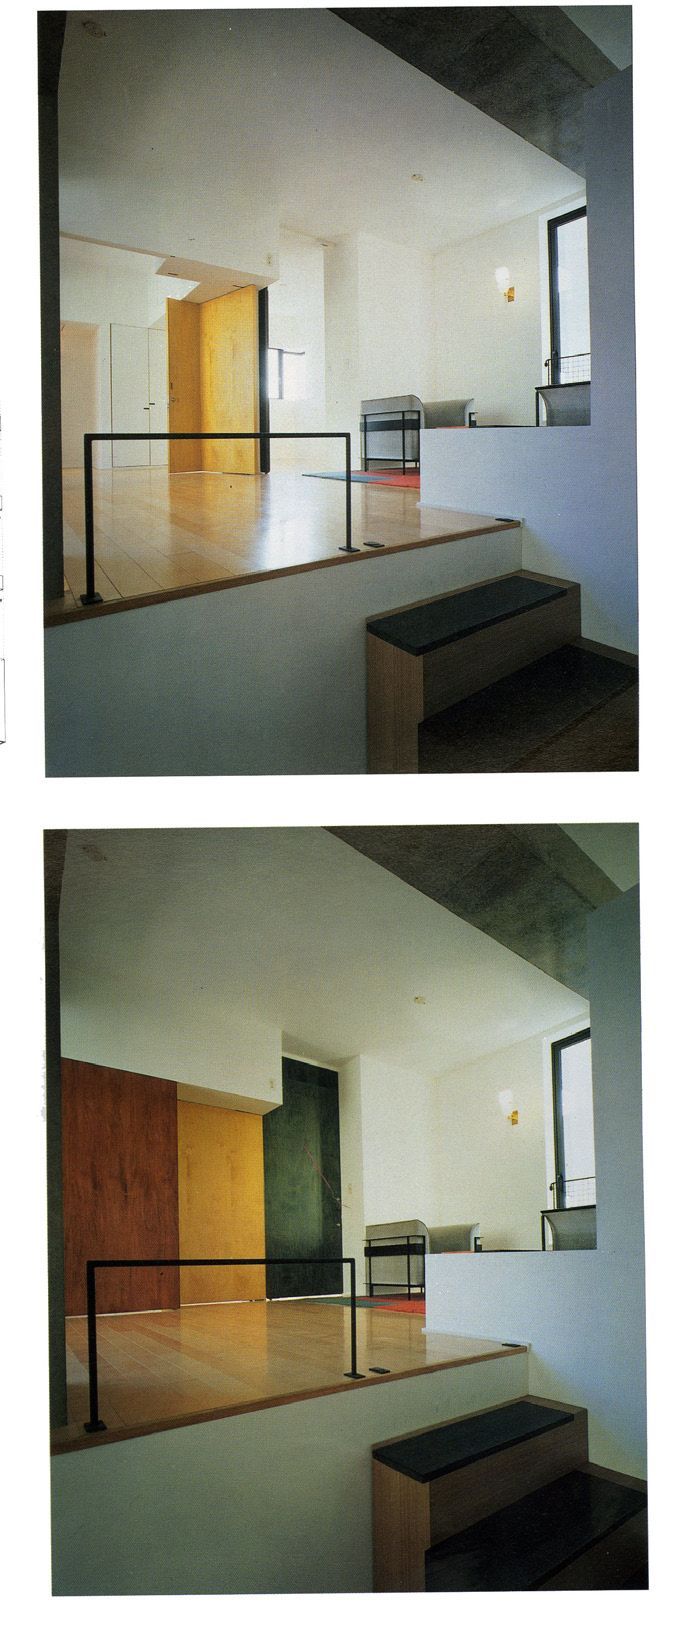 Steven holl fukuoka housing japan ademend appartement for Home holl